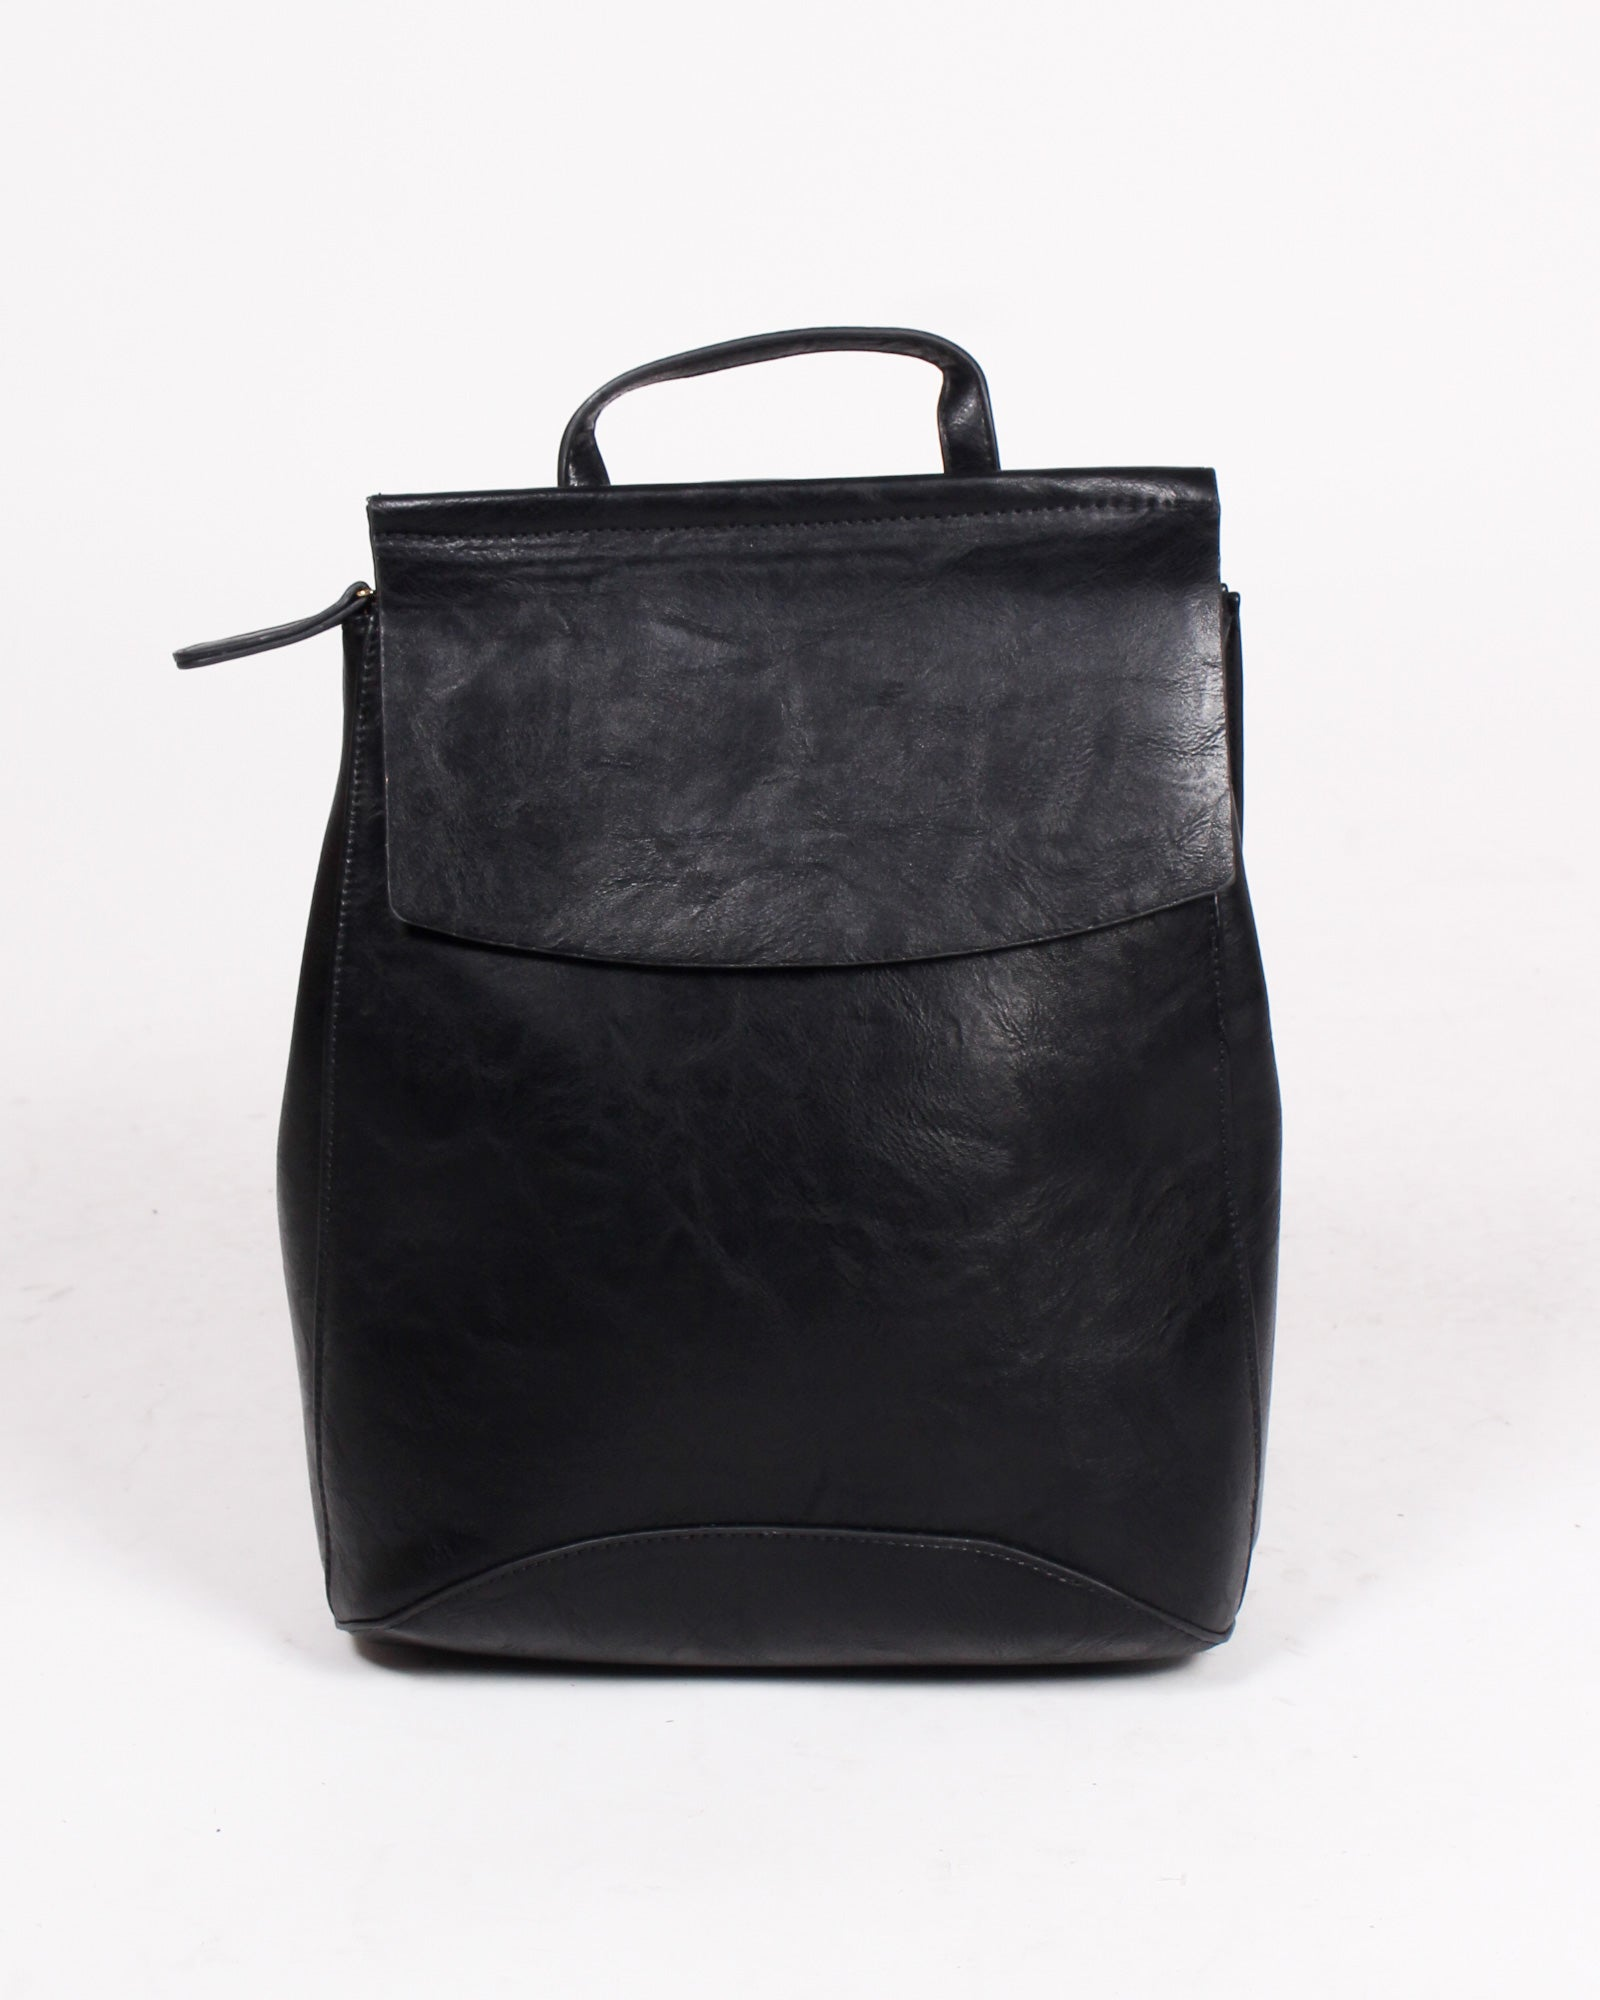 Fashion Q Shop Q It's All About the Bag (Black) IBS1502-A